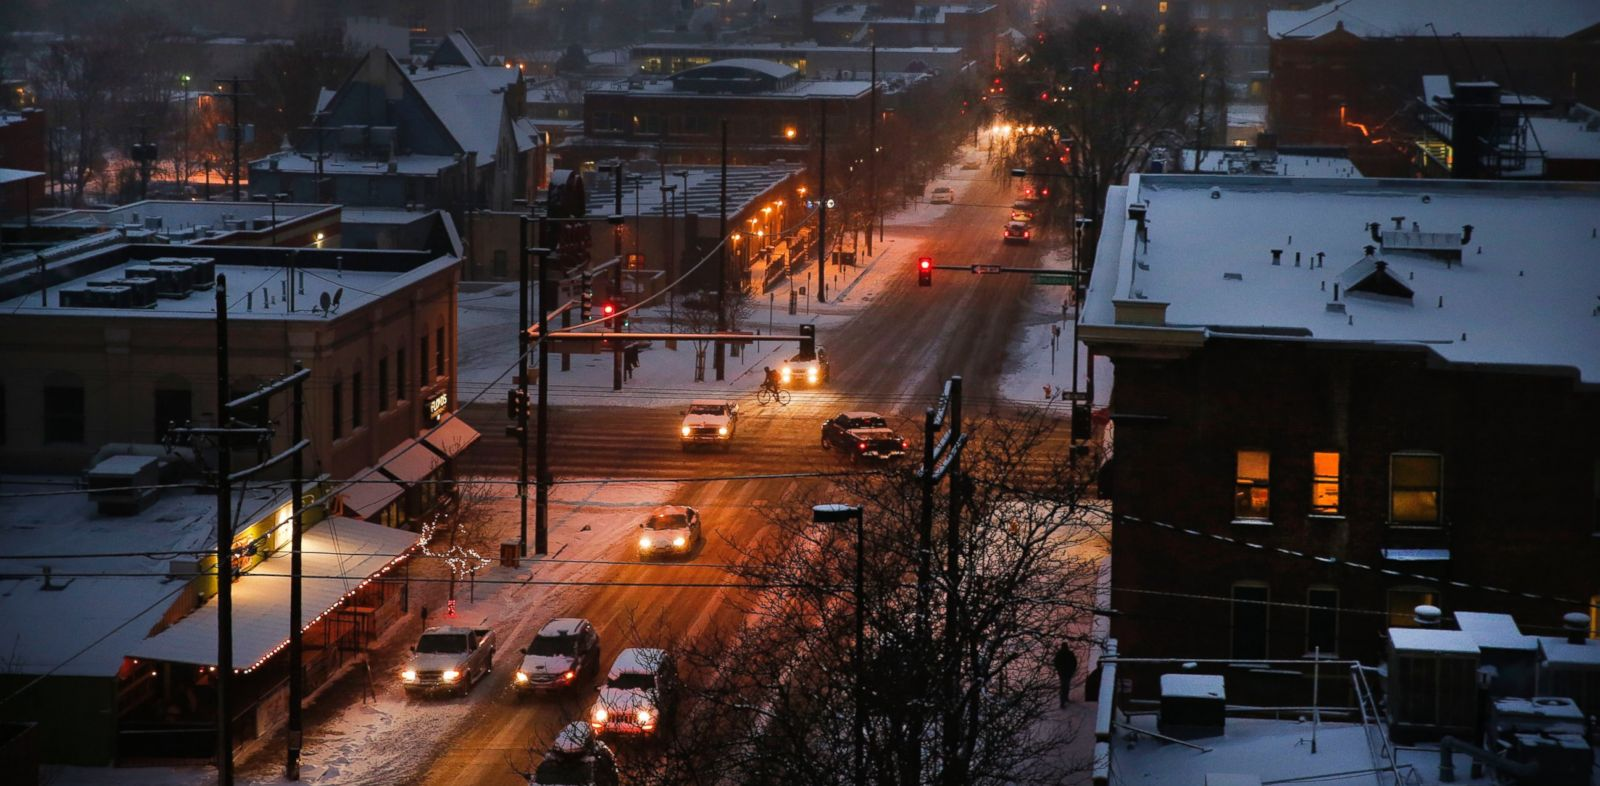 PHOTO: As night falls, rush hour begins in seven degree weather, in downtown Denver on Dec. 4, 2013.